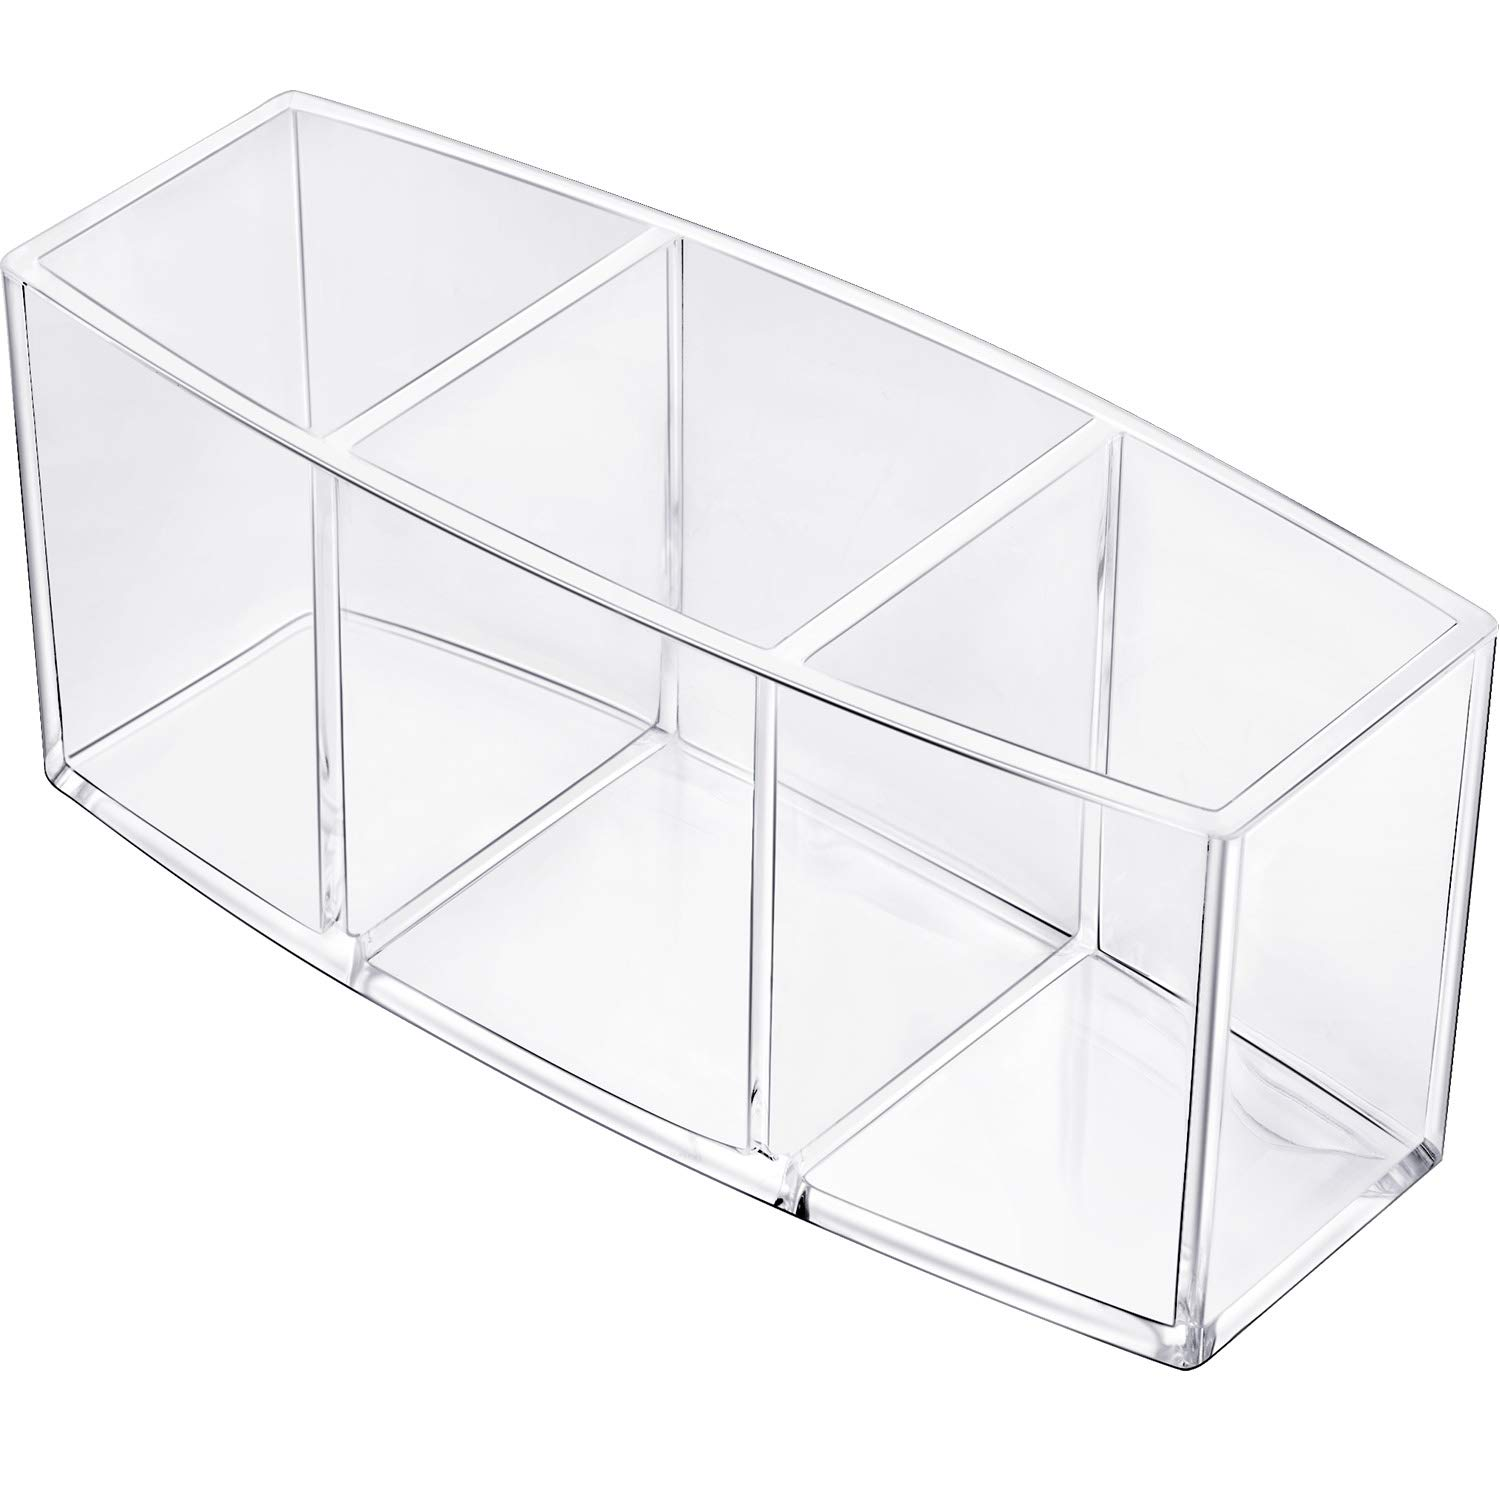 Gejoy Acrylic Pencil Pen Holder Large Makeup Organizer for Desktop Stationery Organizer Clear (3 Compartments)